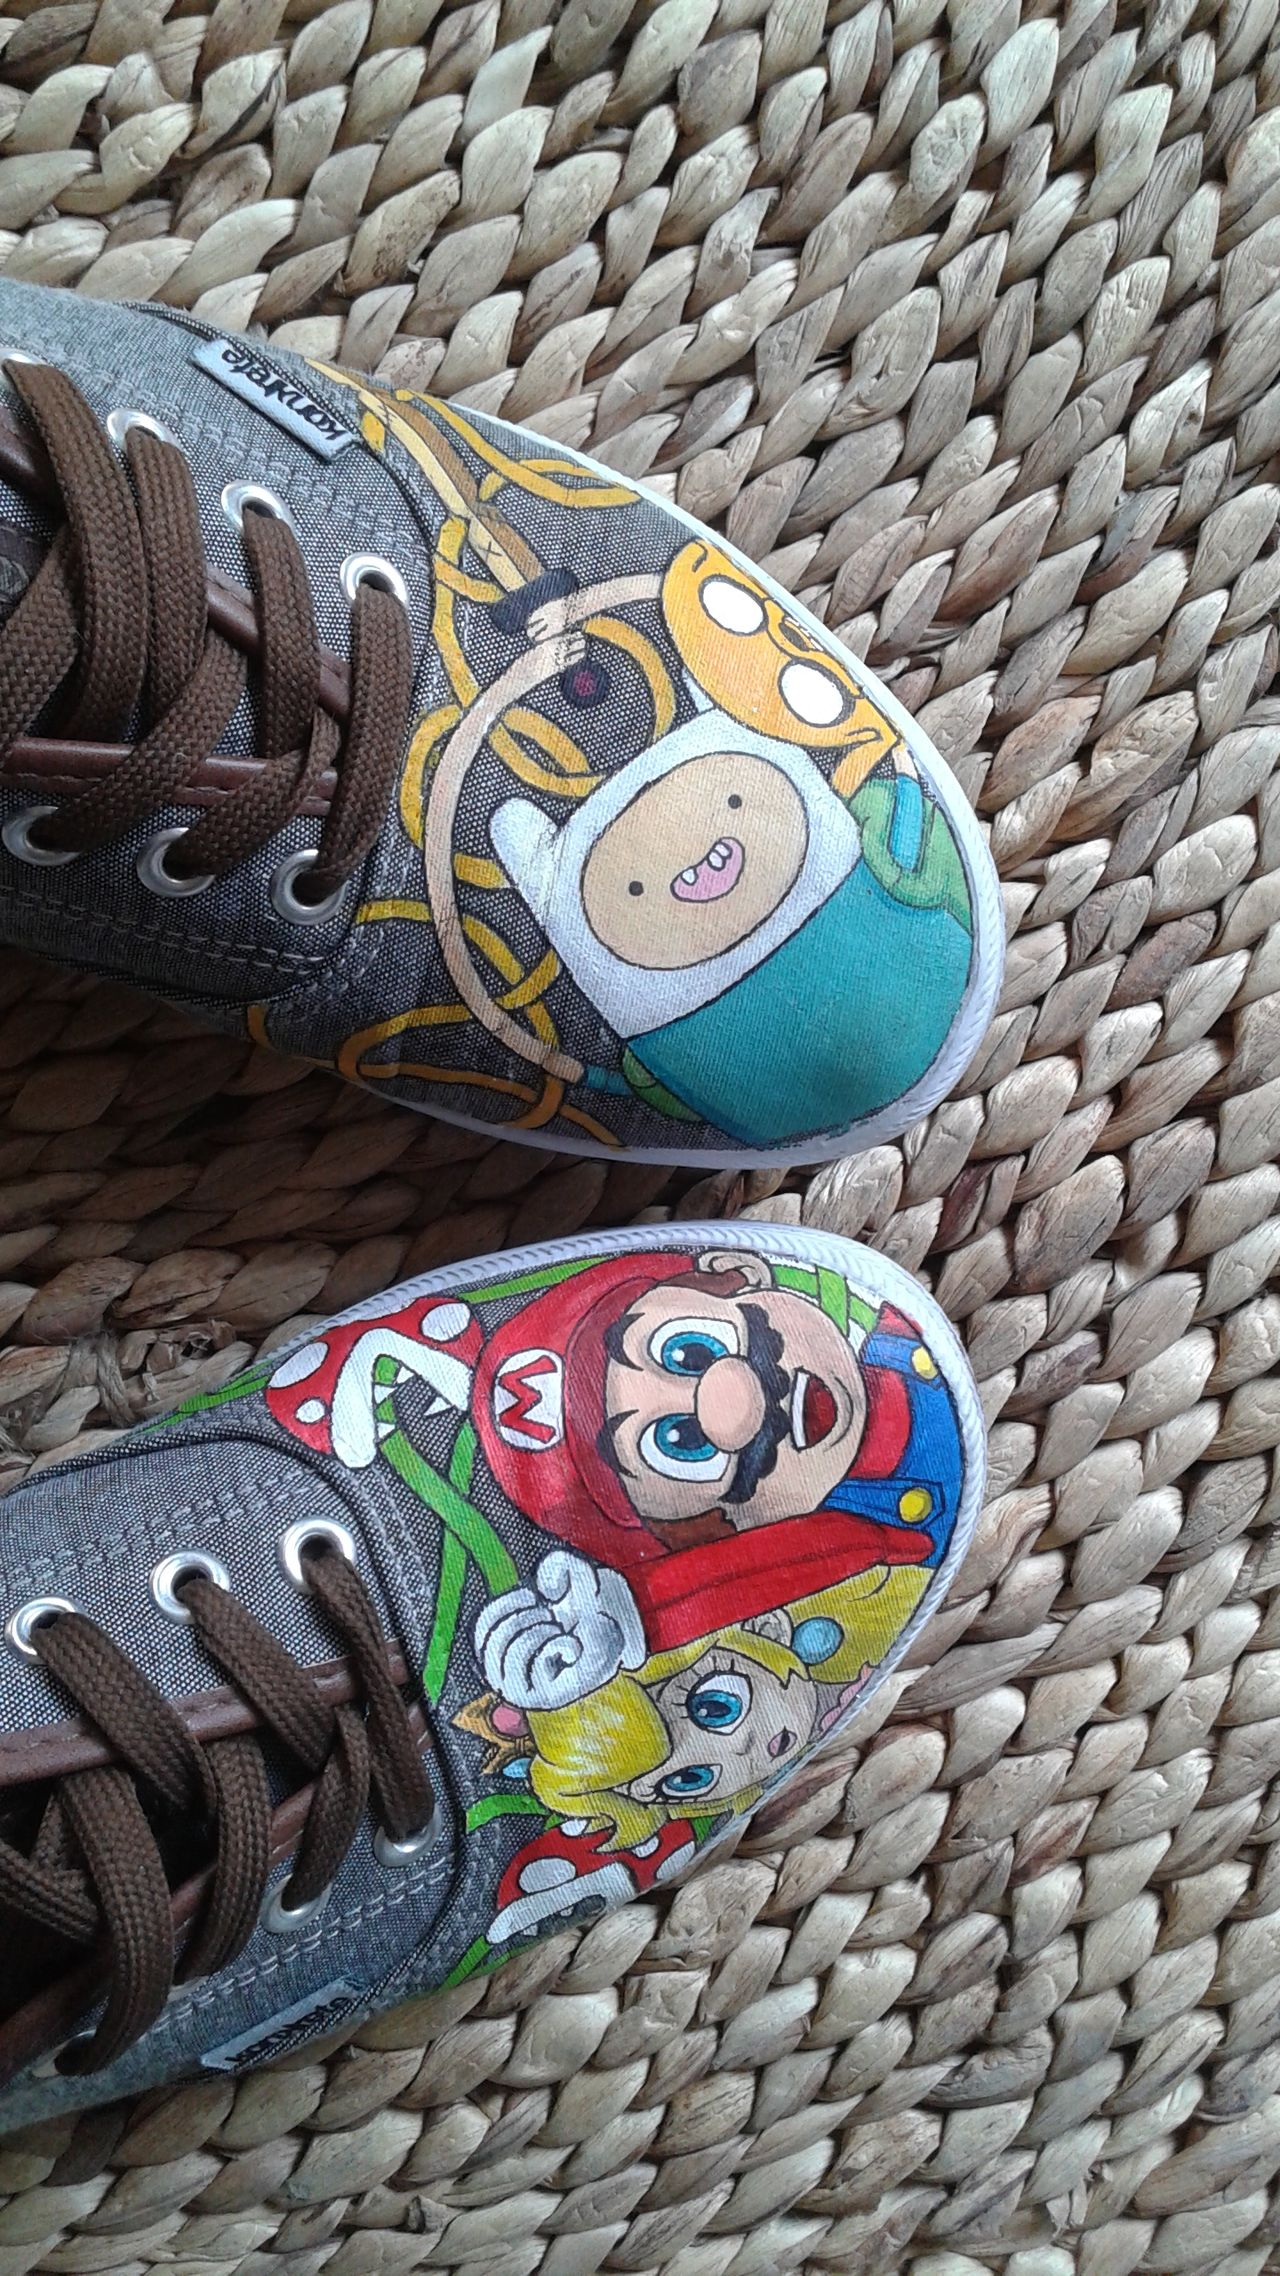 Adventure Time Art ArtWork Close-up Colorful Craft Creativity Design Finnthehuman Jakethedog Mario Bros Multi Colored No People Painting Princess Peach Shoes Super Mario Supermario